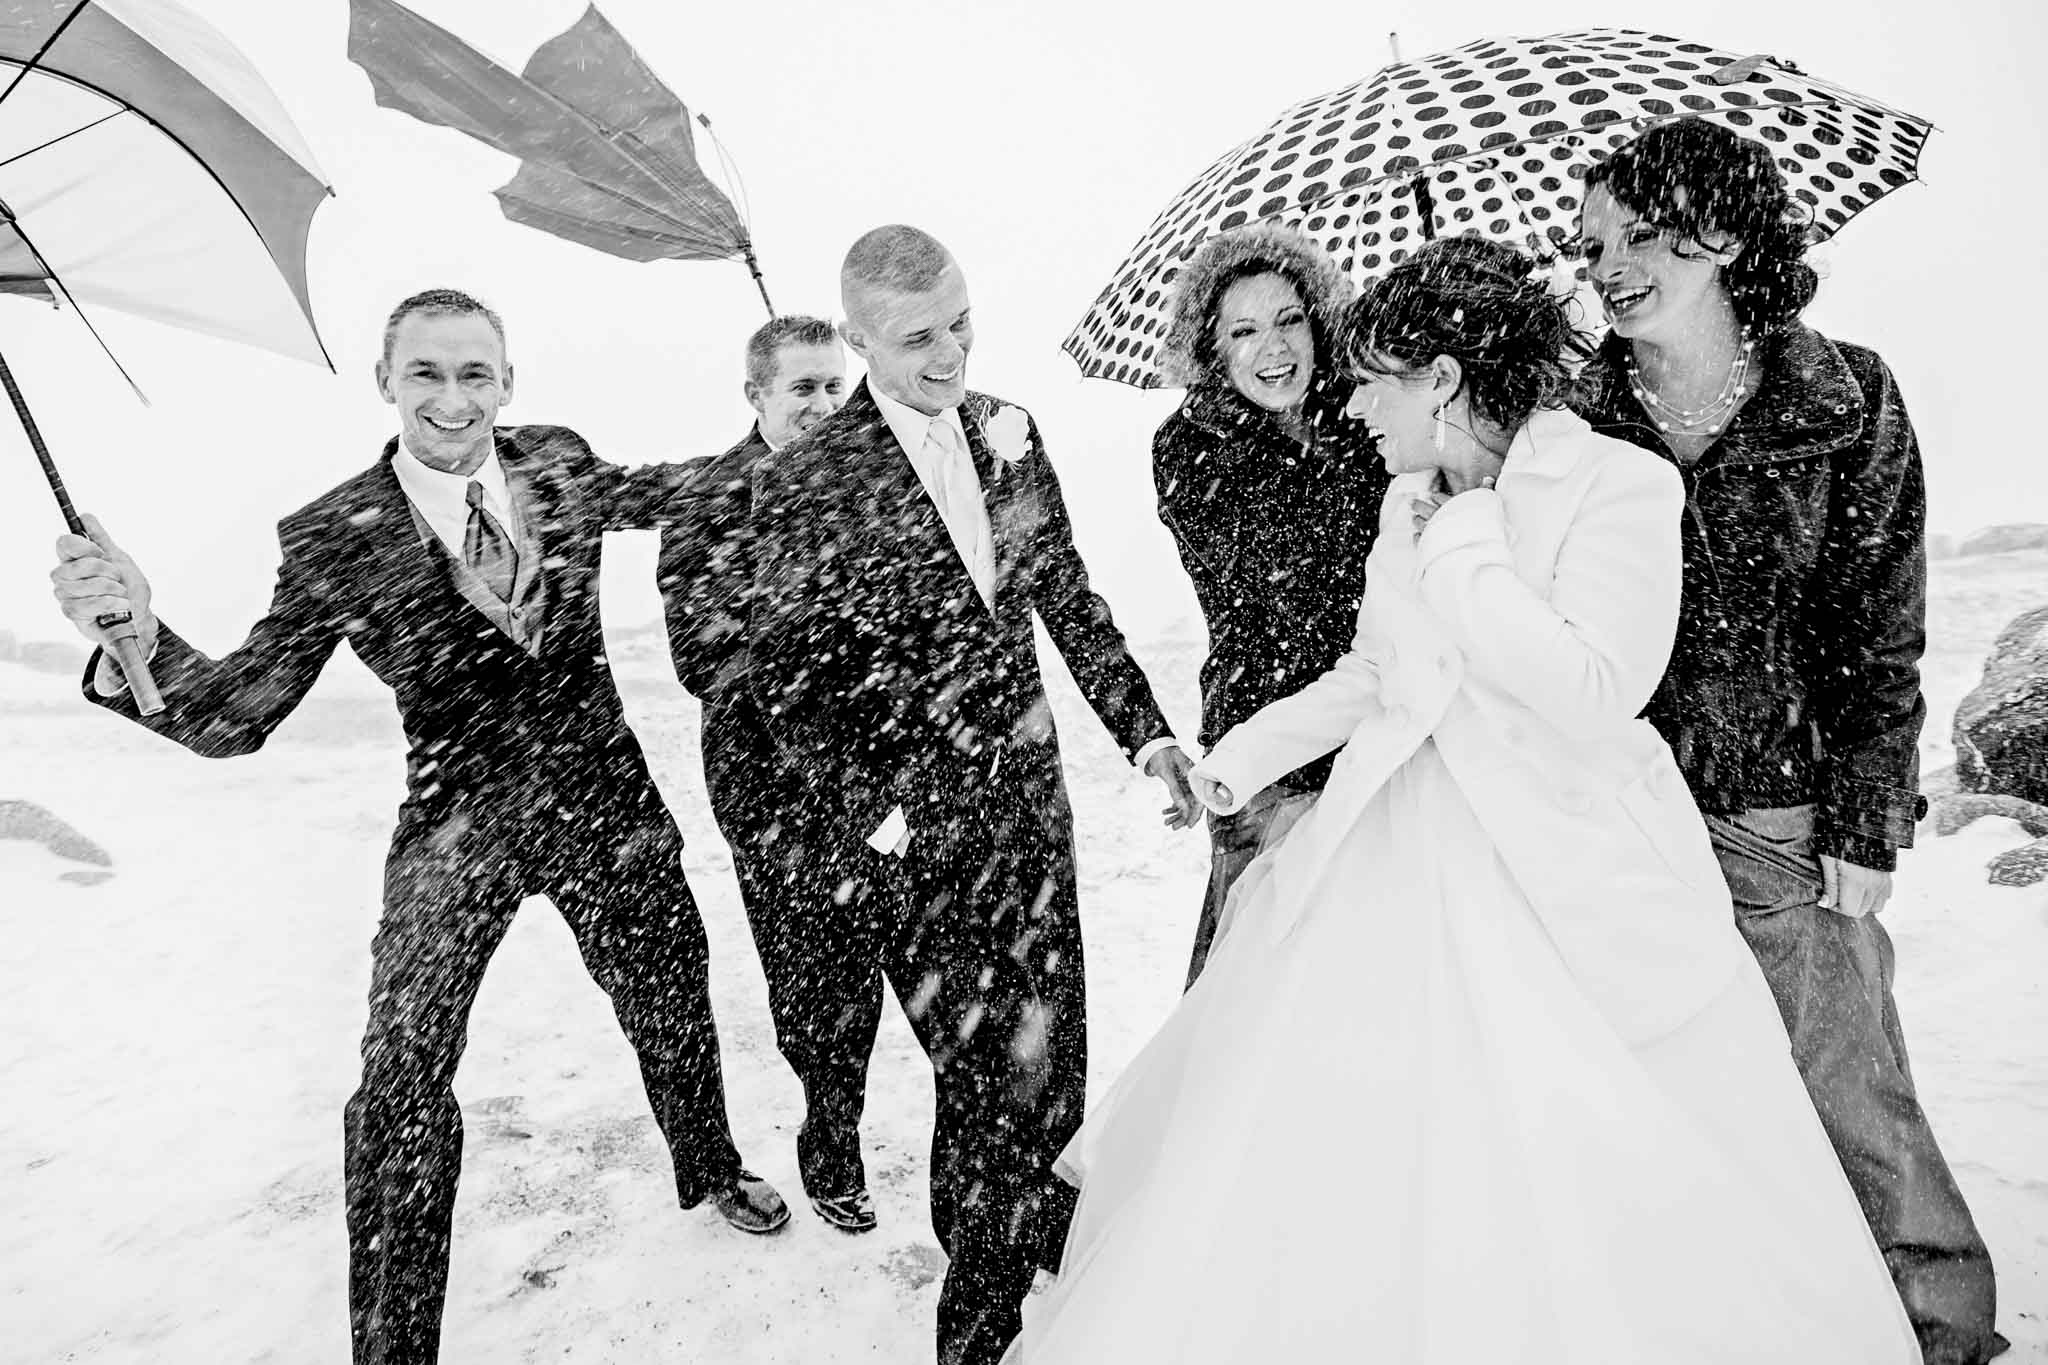 Bridal party laughing in snow blizzard just outside Silcox Hut